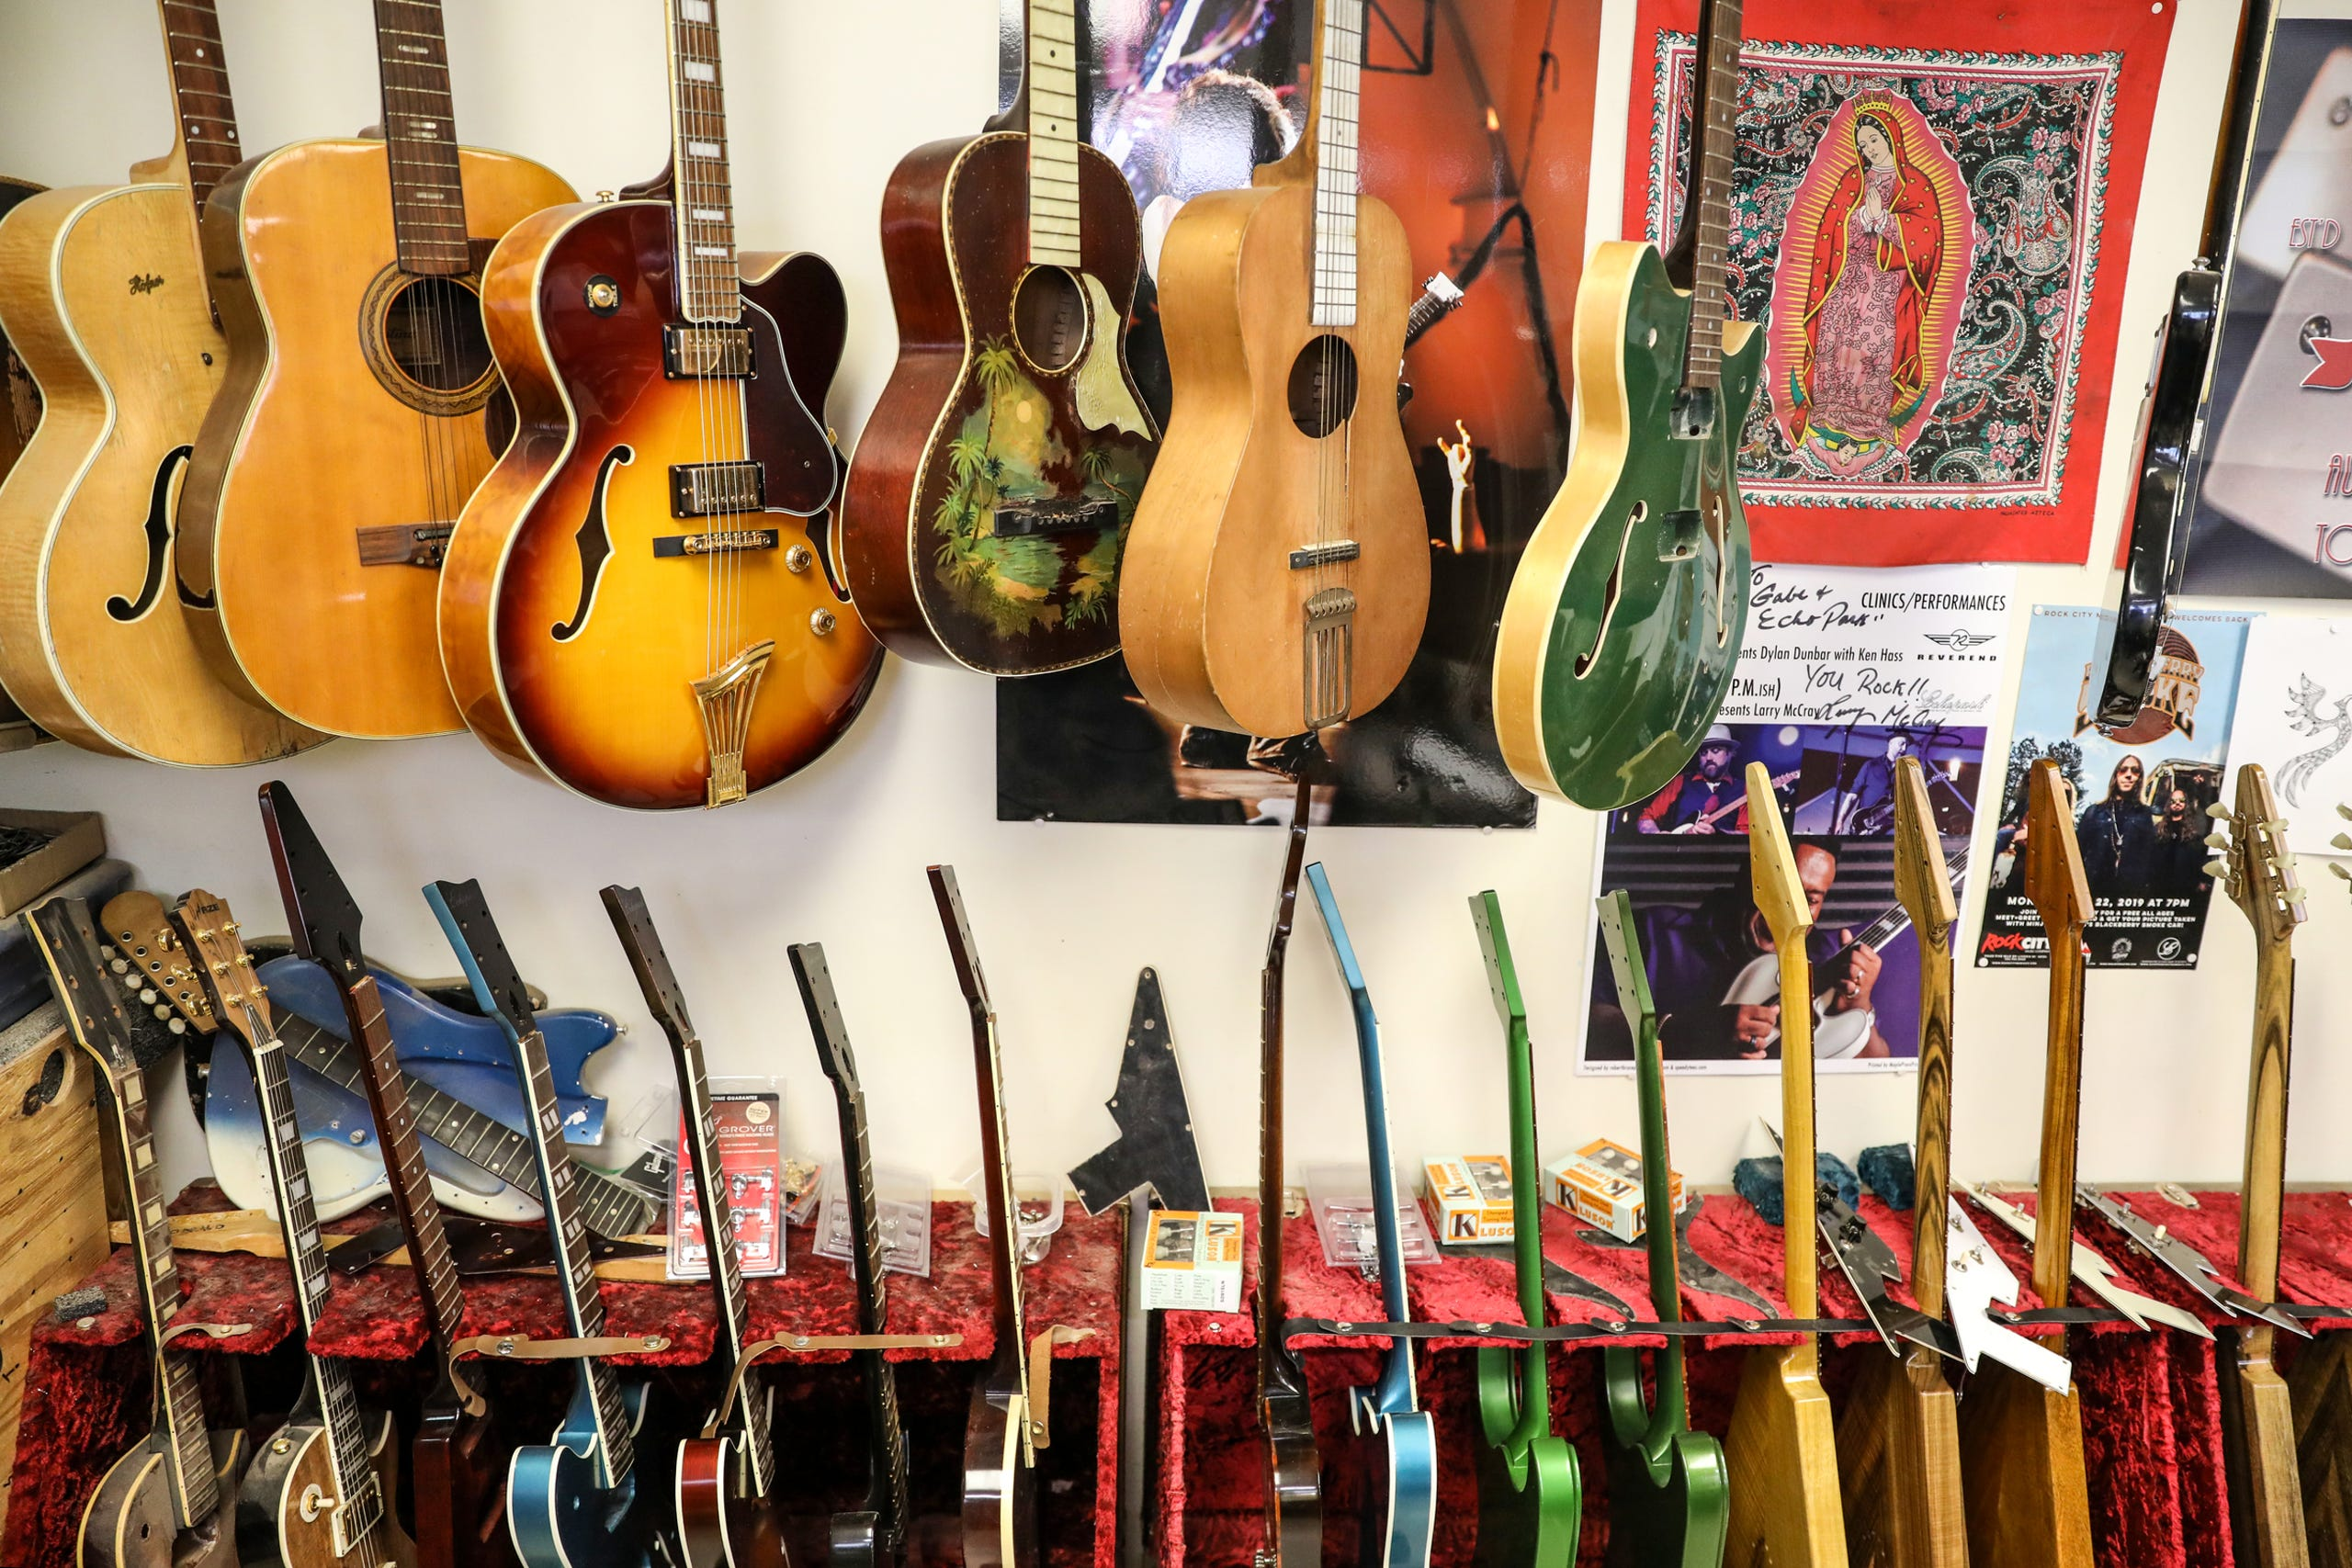 """Gabriel Currie, 52, of Detroit, grew up in Los Angeles but moved to Detroit in 2017 with his family to continue making hand-crafted guitars with the company he founded, Echopark Guitars, located in the Old Redford neighborhood of Detroit on Nov. 12, 2020. Currie recently donated """"The Salt of Detroit"""" electric guitar that he made from 100-year-old trees submerged in Lake Michigan to Ann Delisi of WDET radio. The electric guitar will be raffled off and features drawings of famous guitarists created by Detroit artist Sabrina Nelson."""